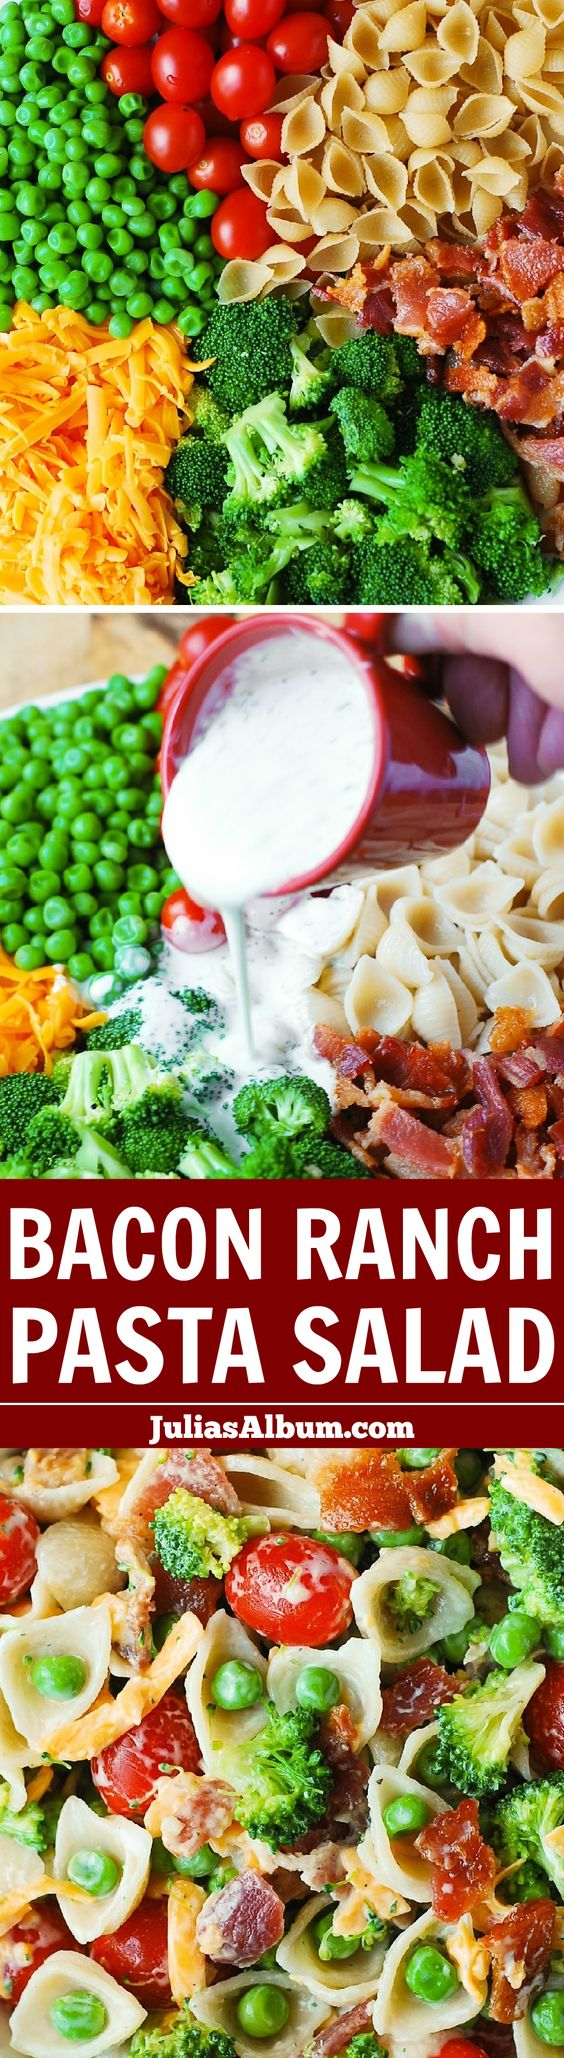 Bacon Ranch Pasta Salad - LOADED with veggies (broccoli, cherry tomatoes, sweet peas), sharp Cheddar cheese, pasta shells, and bacon! Healthy comfort food!: